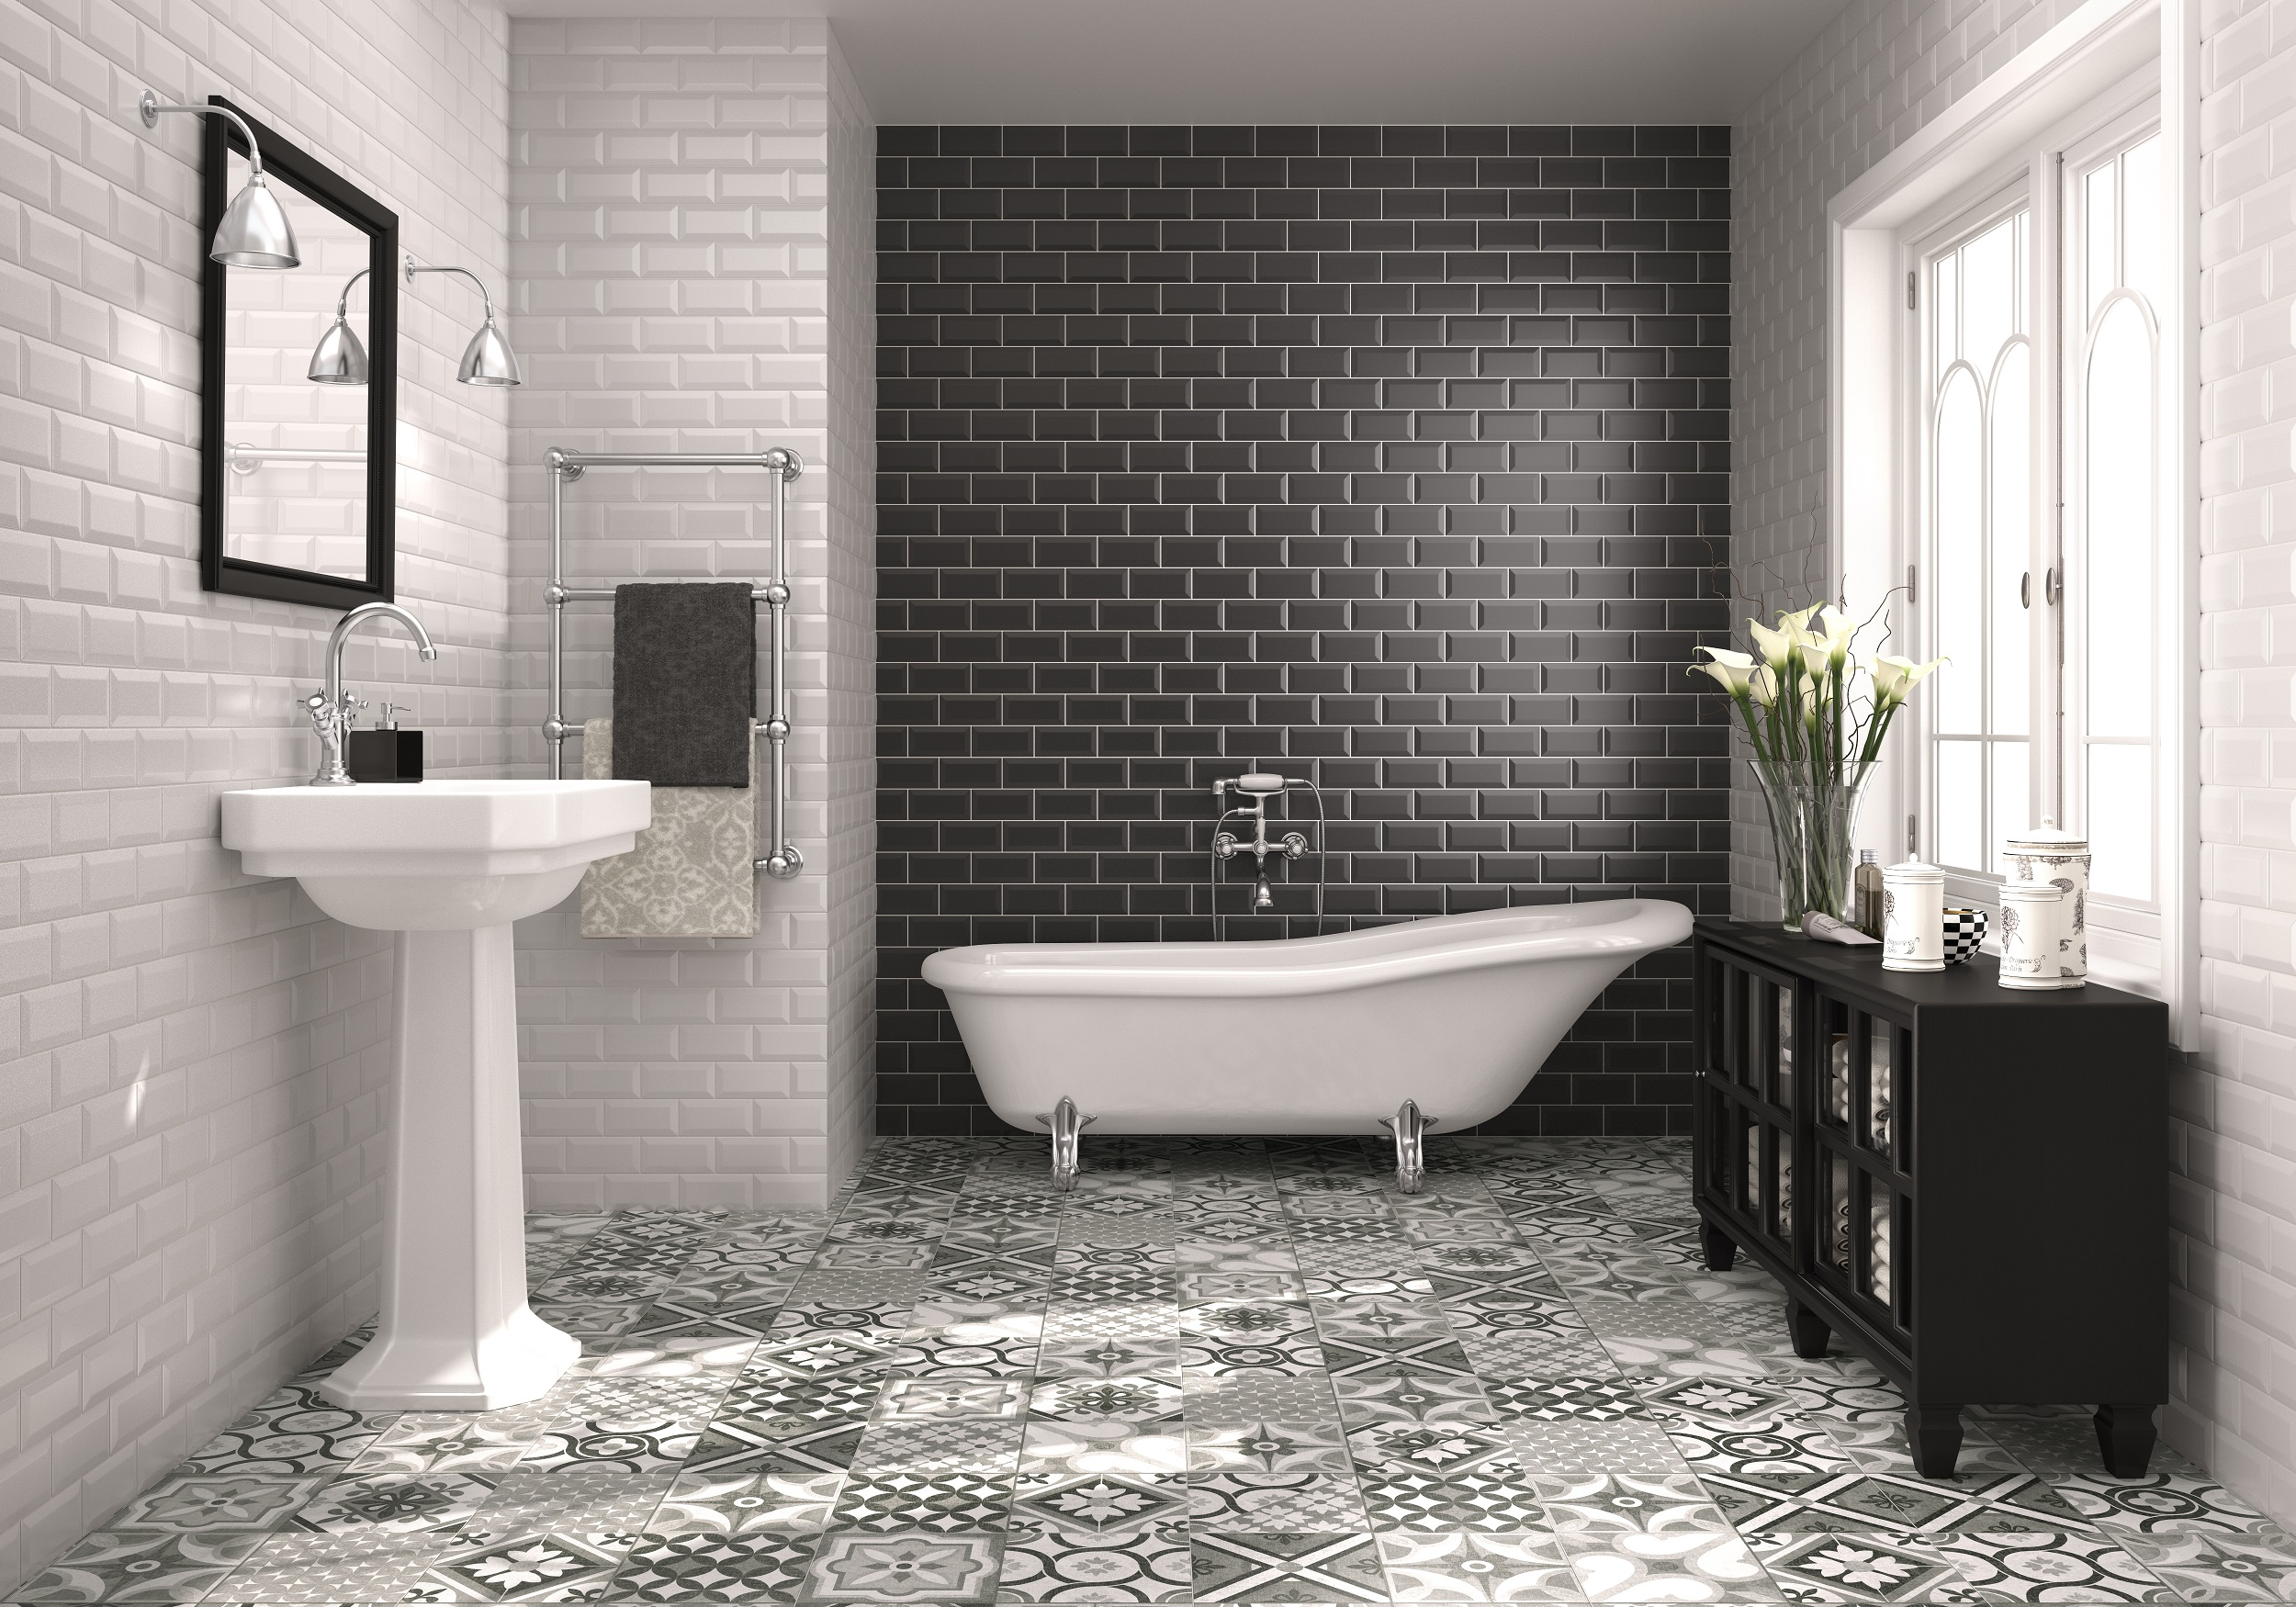 Top macro and micro bathroom trends of 2015 | Better Living Products